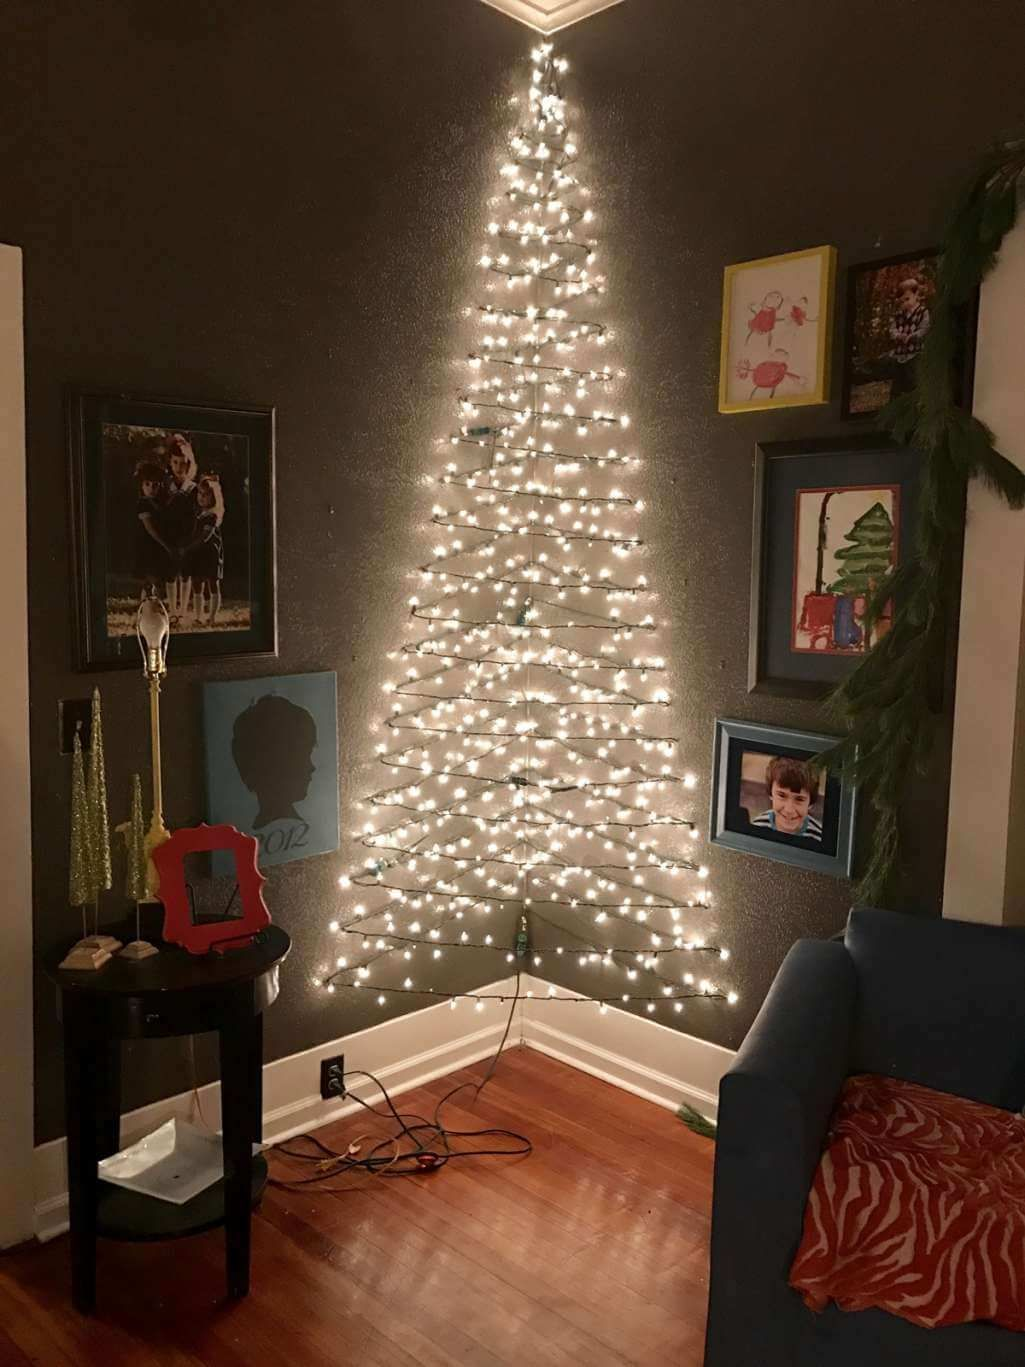 If You Live In A Small House Or An Apartment And Putting Up A Big Christmas Tree Isn T Possib Christmas Apartment Christmas Wall Decor Christmas Wall Decor Diy